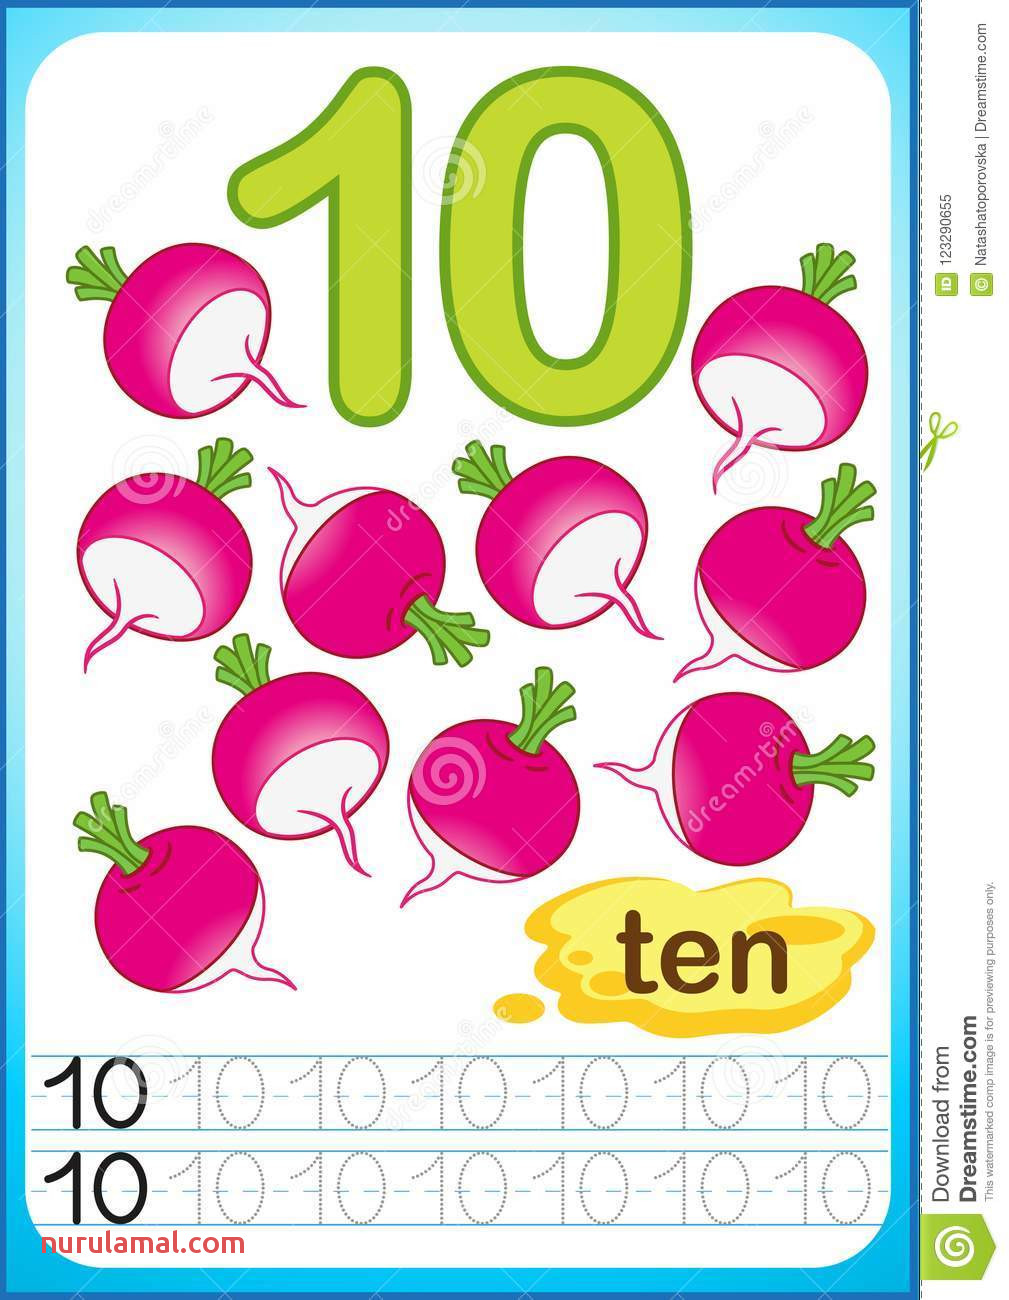 printable worksheet kindergarten preschool count write numbers to exercises writing bright ve able harvest chili